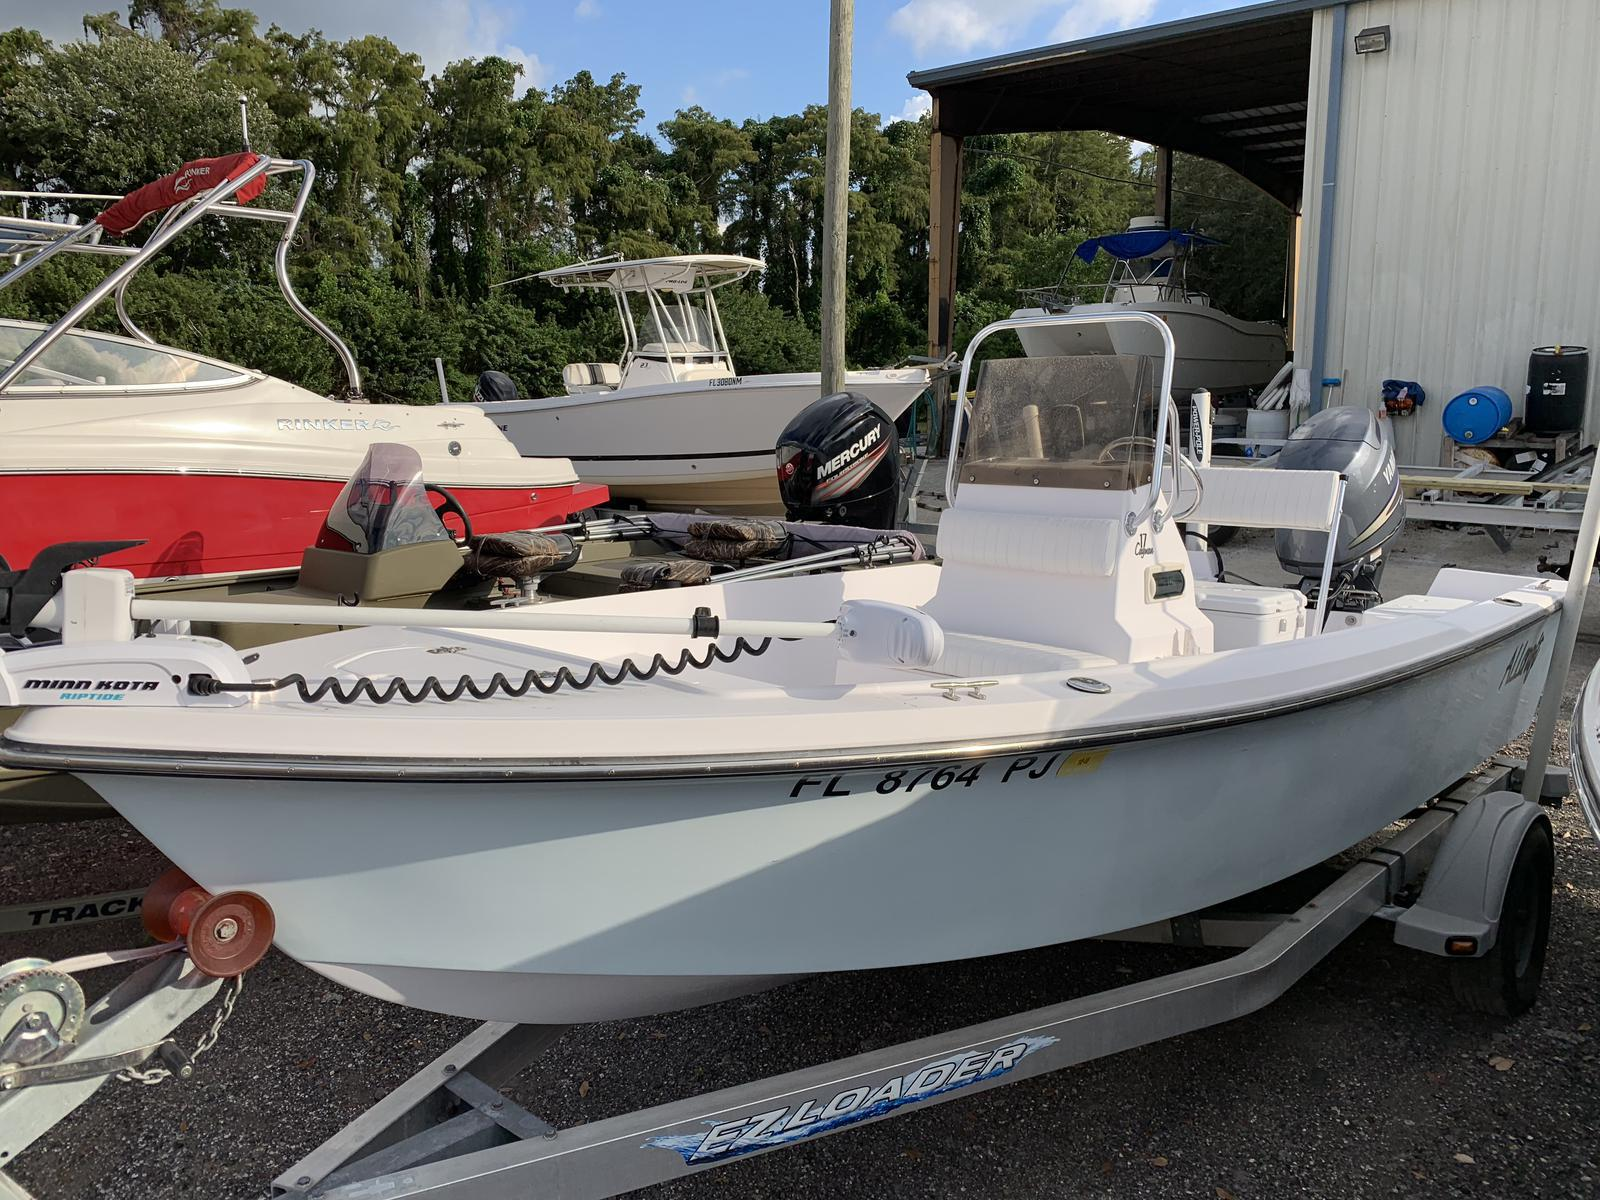 Stumpnocker FISHING BOAT 17 CAYMAN